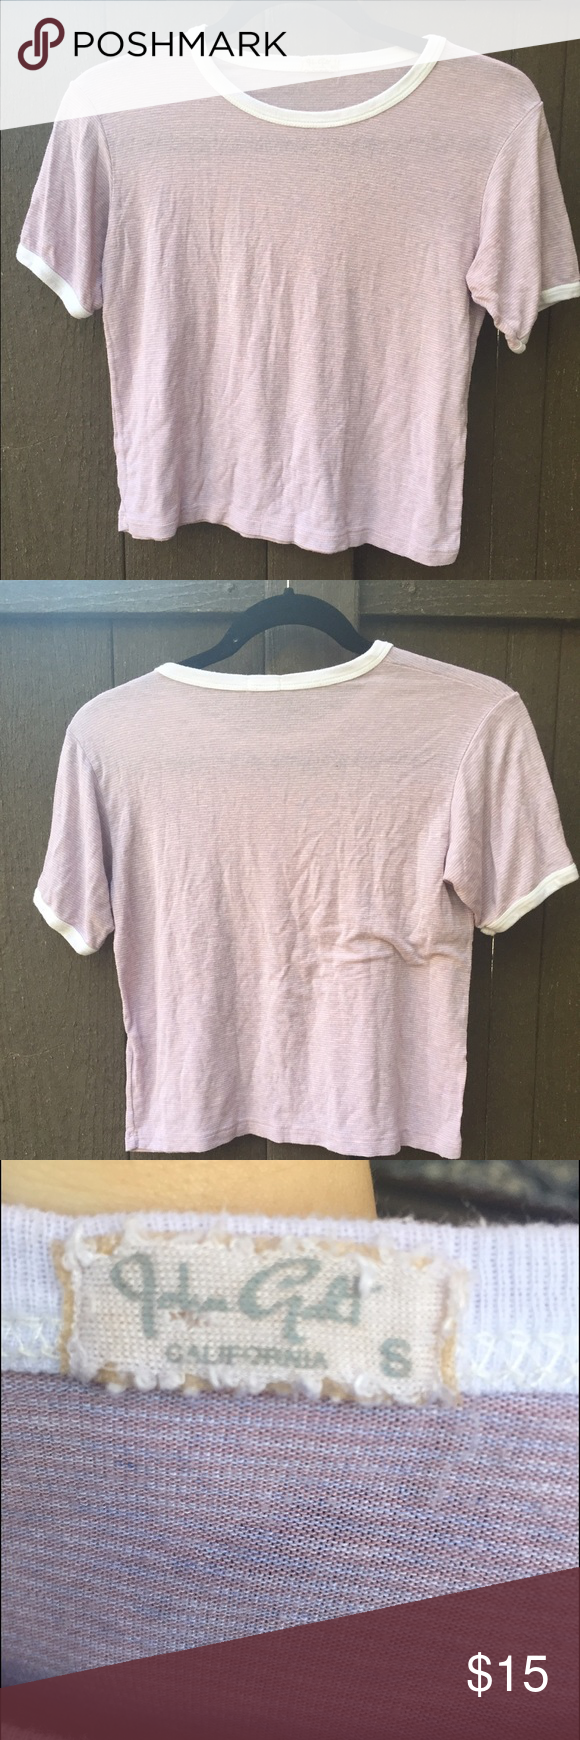 Brandy Melville Blush Striped Nadine ADORABLE white and Blush pink striped Ringer t shirt Very slight piling from being washed Fits around a small to medium If you have any questions please feel free to ask :) Brandy Melville Tops Tees - Short Sleeve